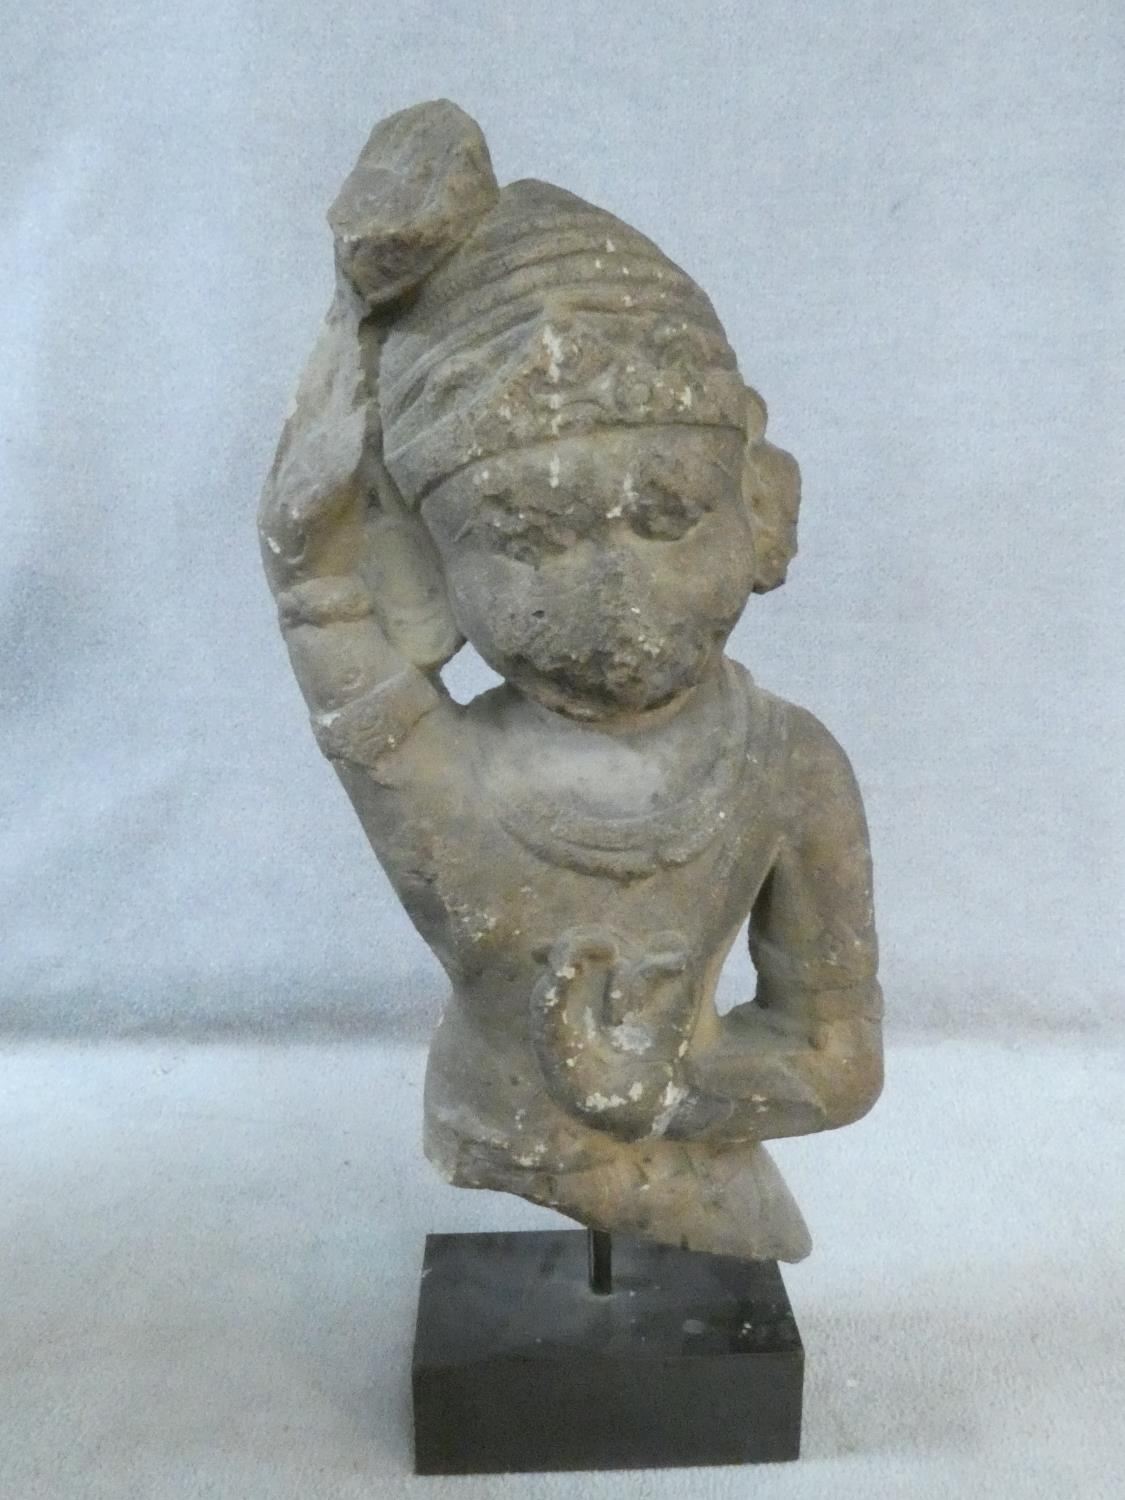 A 14th/15th century South East Asian carved sandstone figure of a deity mounted on a square